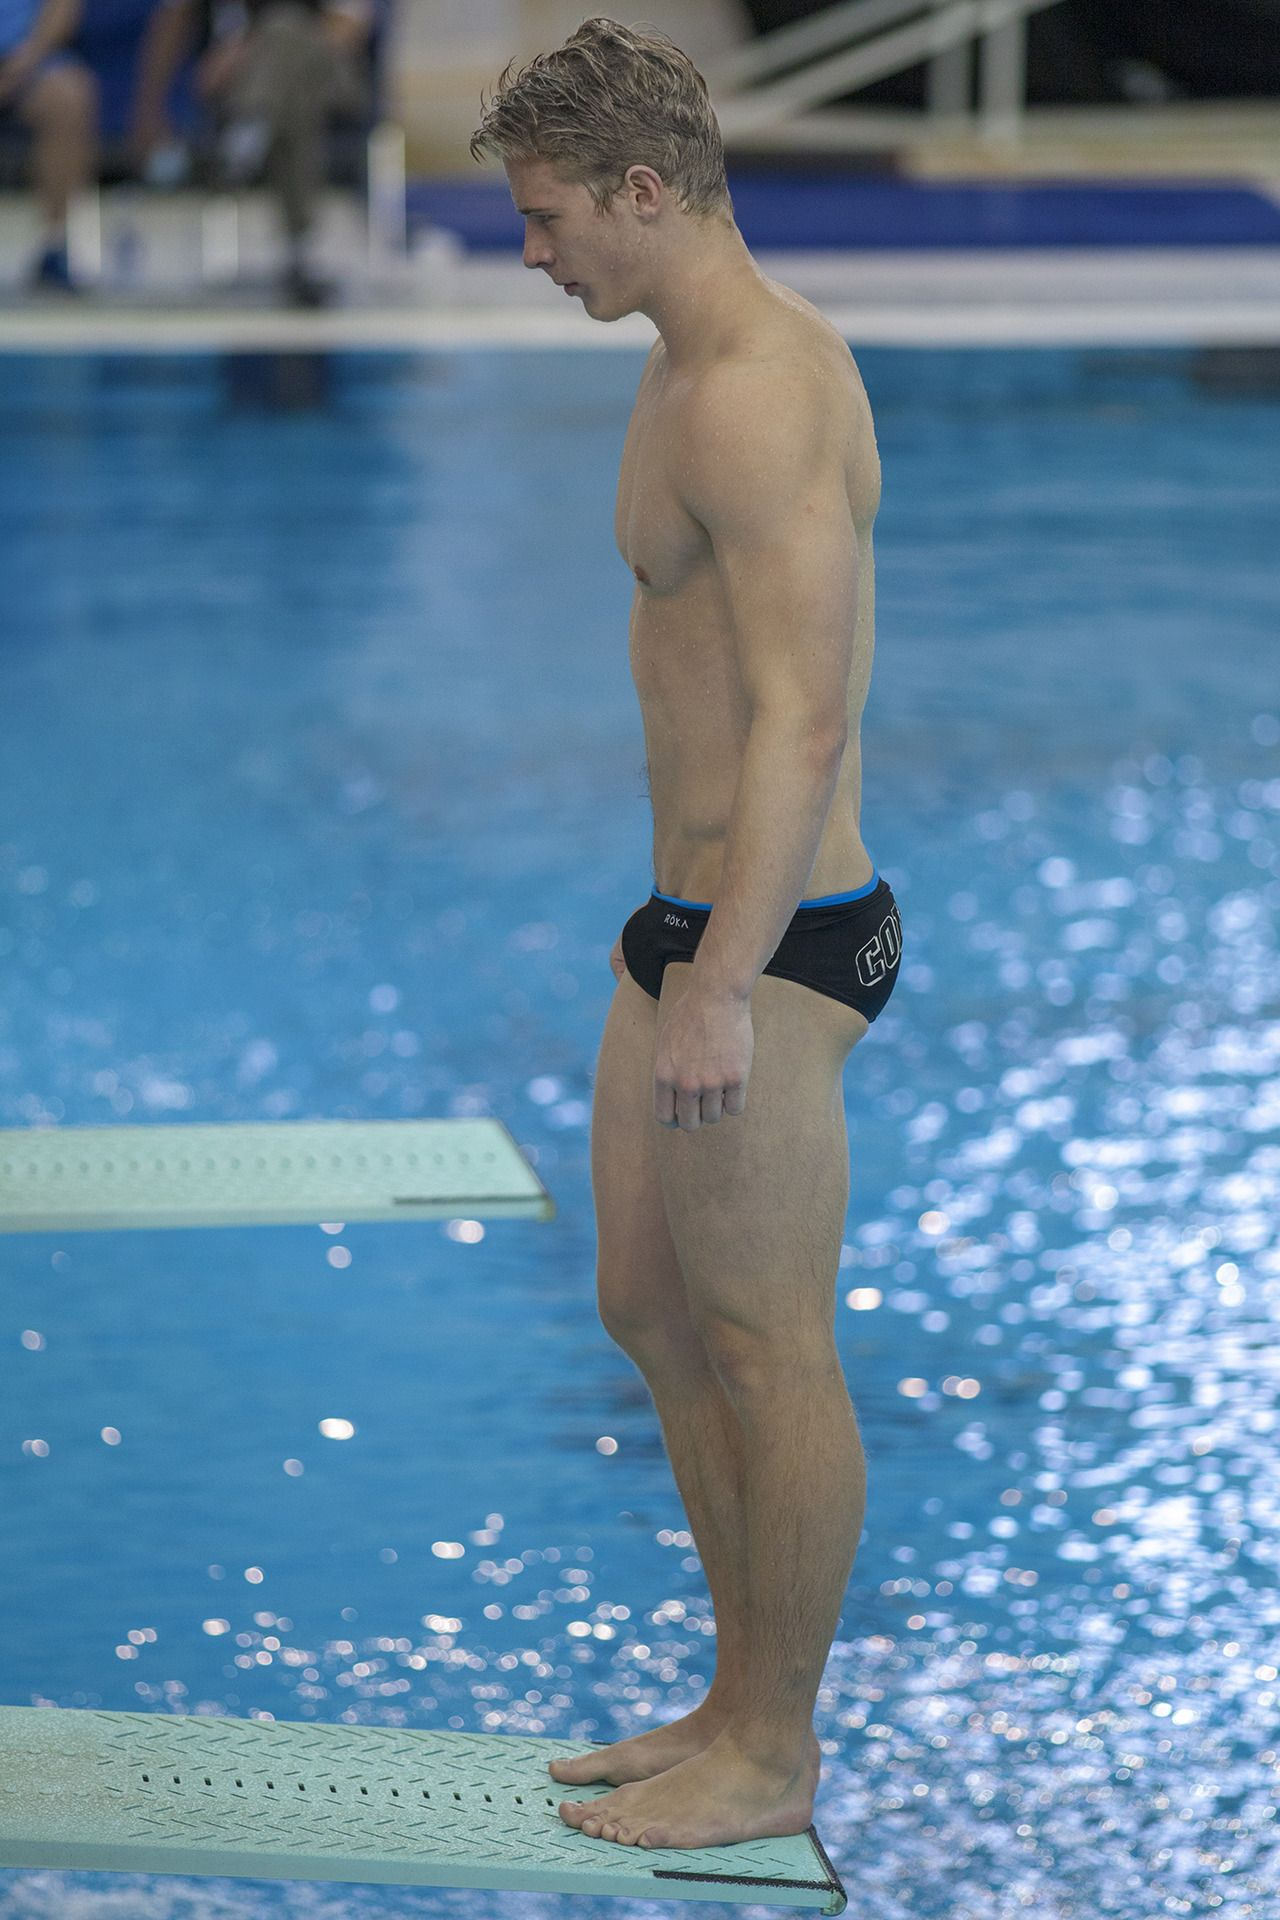 13c98ba38c1a7 Hot swimmer with lean build and small bulge in Speedos. More hot men  @Adamb18